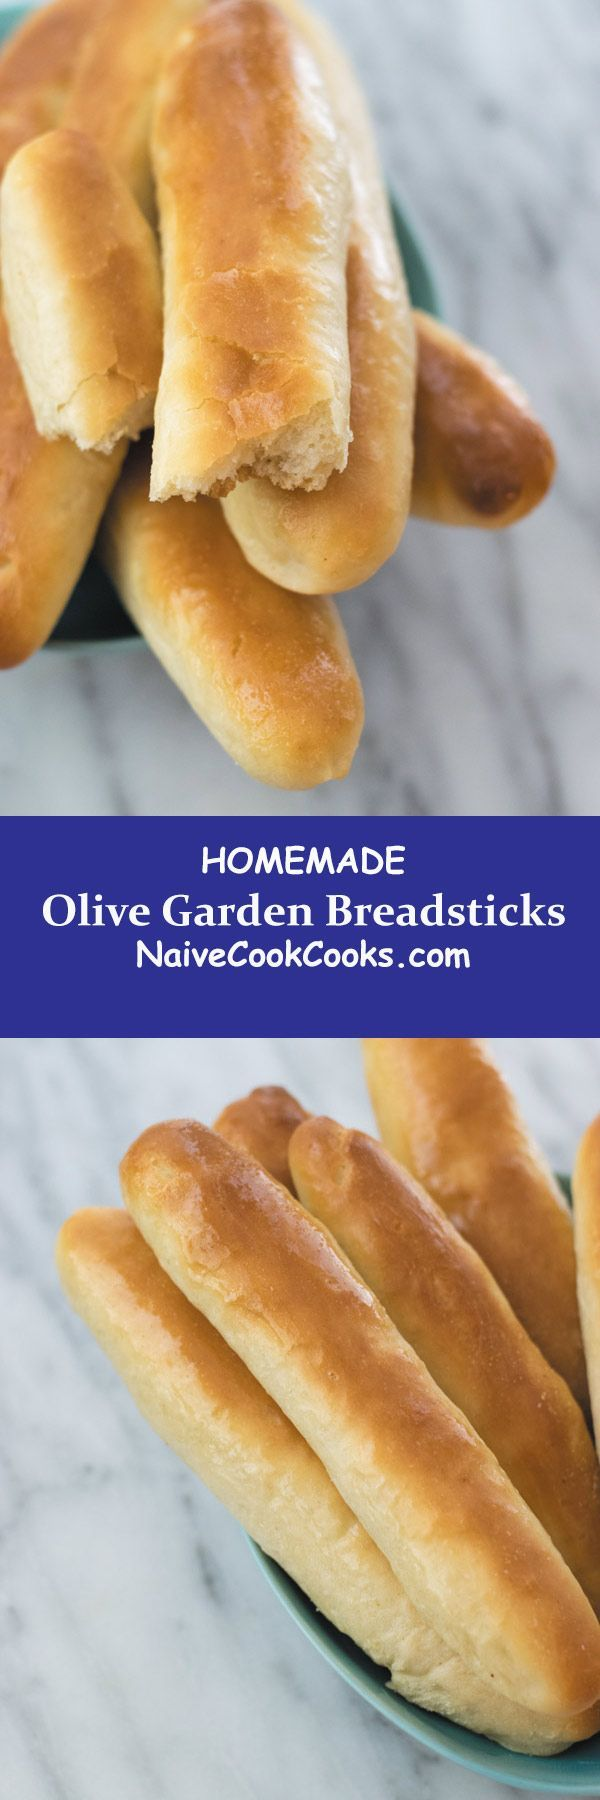 Homemade Olive Garden Breadsticks Naive Cook Cooks Recipe Homemade Bread Food Recipes